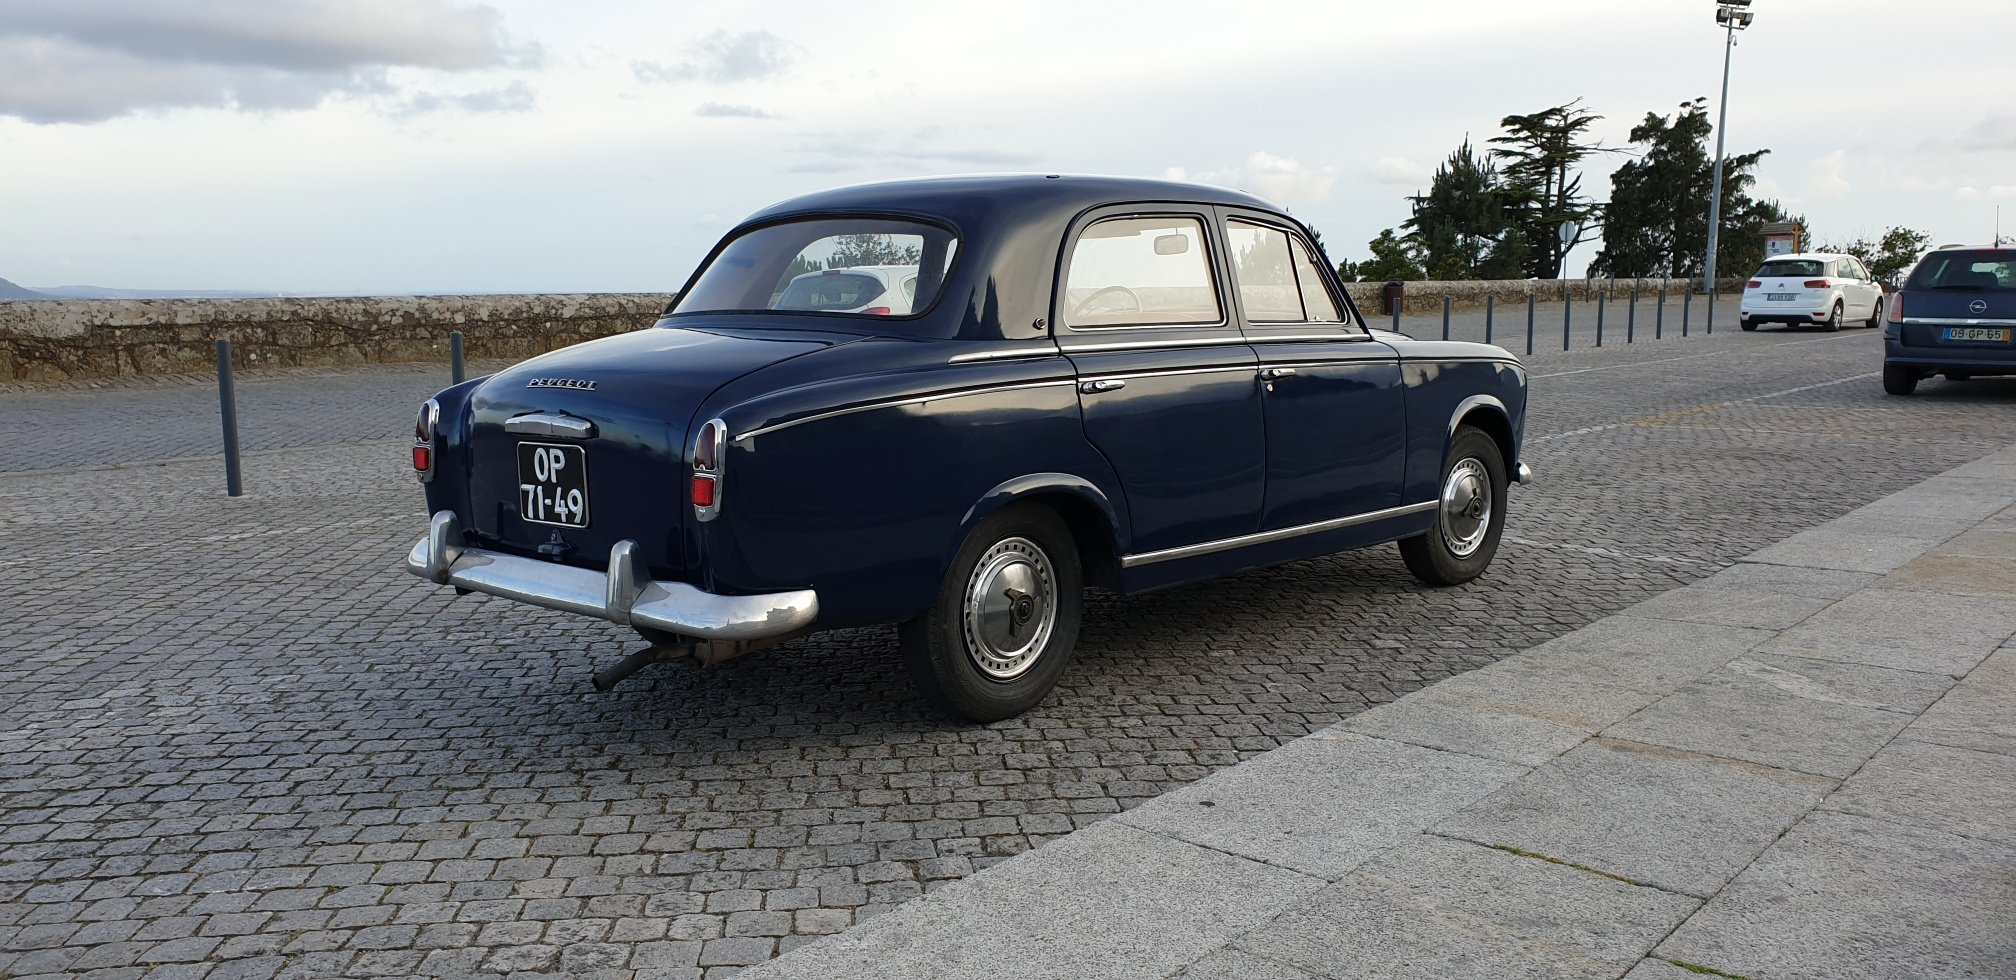 1960 Peugeot 403 Berline Grand Luxe for Sale For Sale (picture 3 of 6)